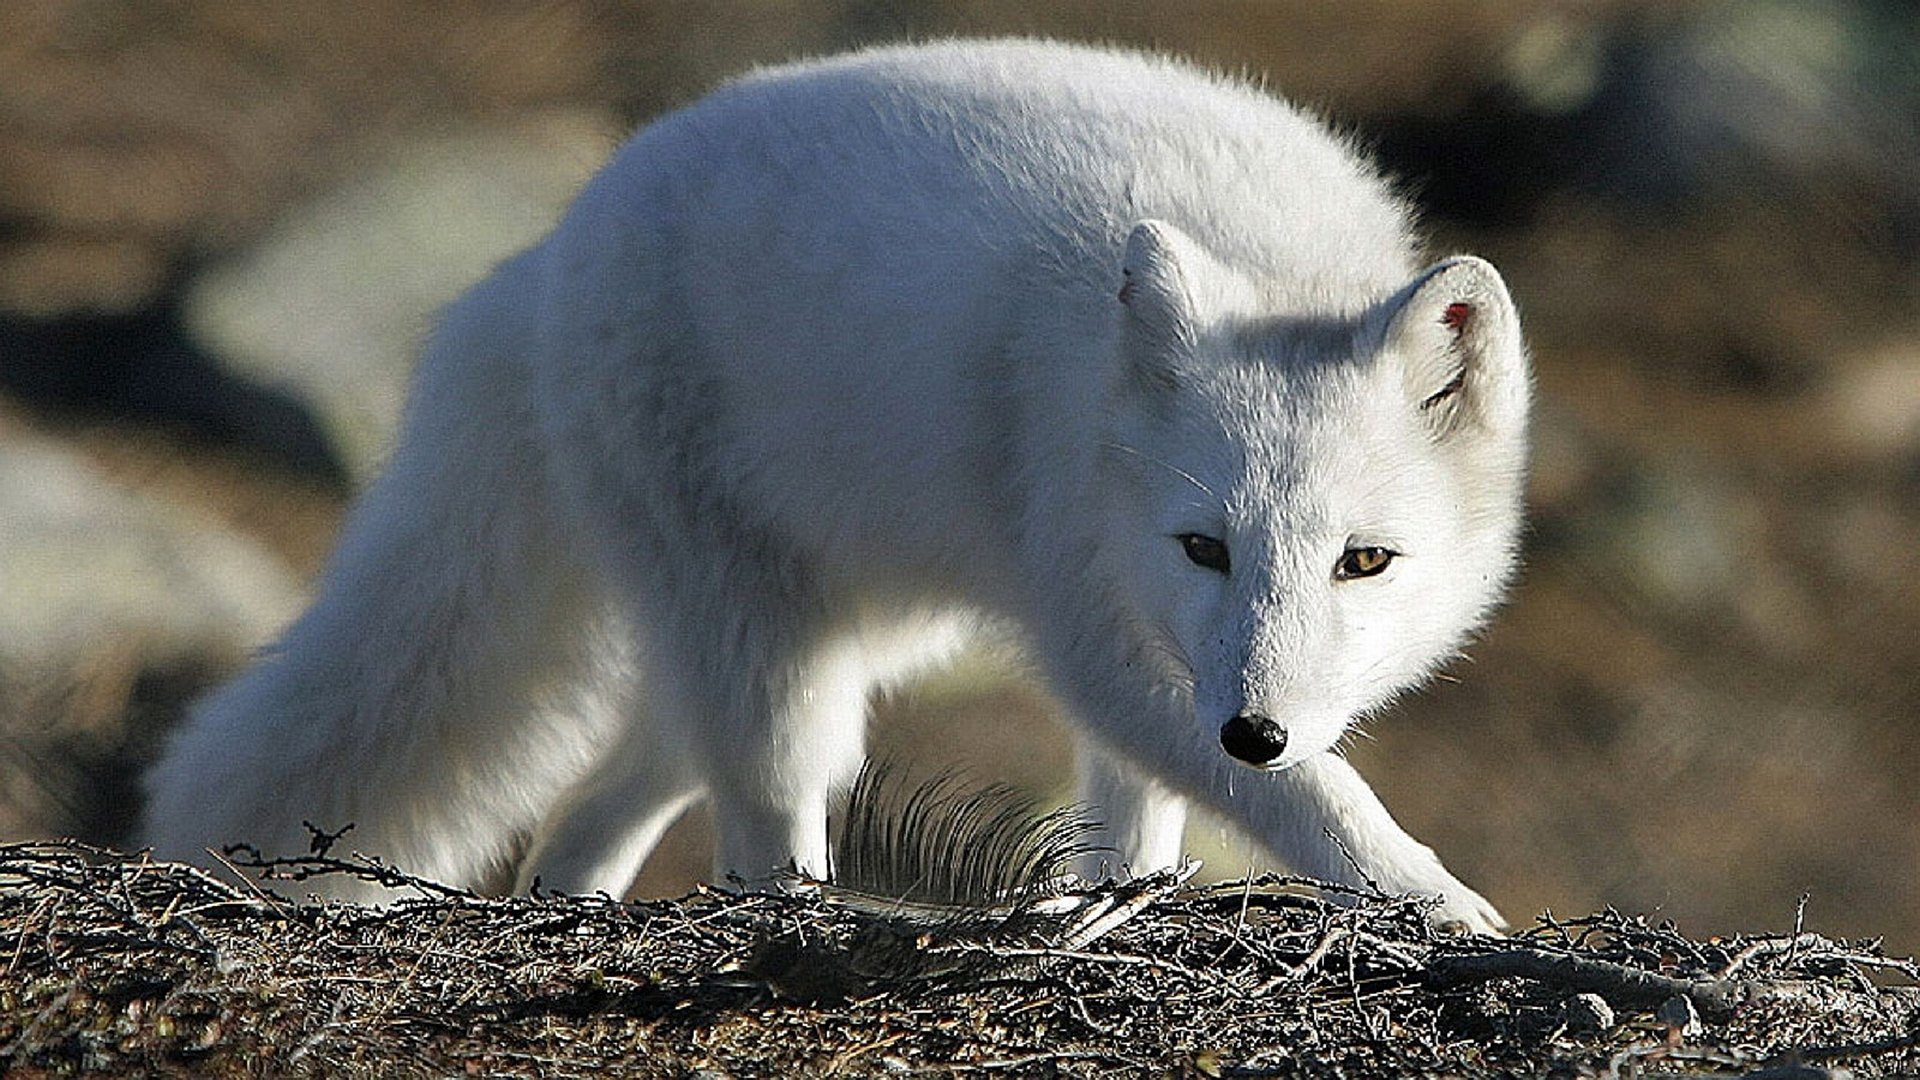 Arctic-Fox-HD-Backgrounds-Page-wallpaper-wpc9202516